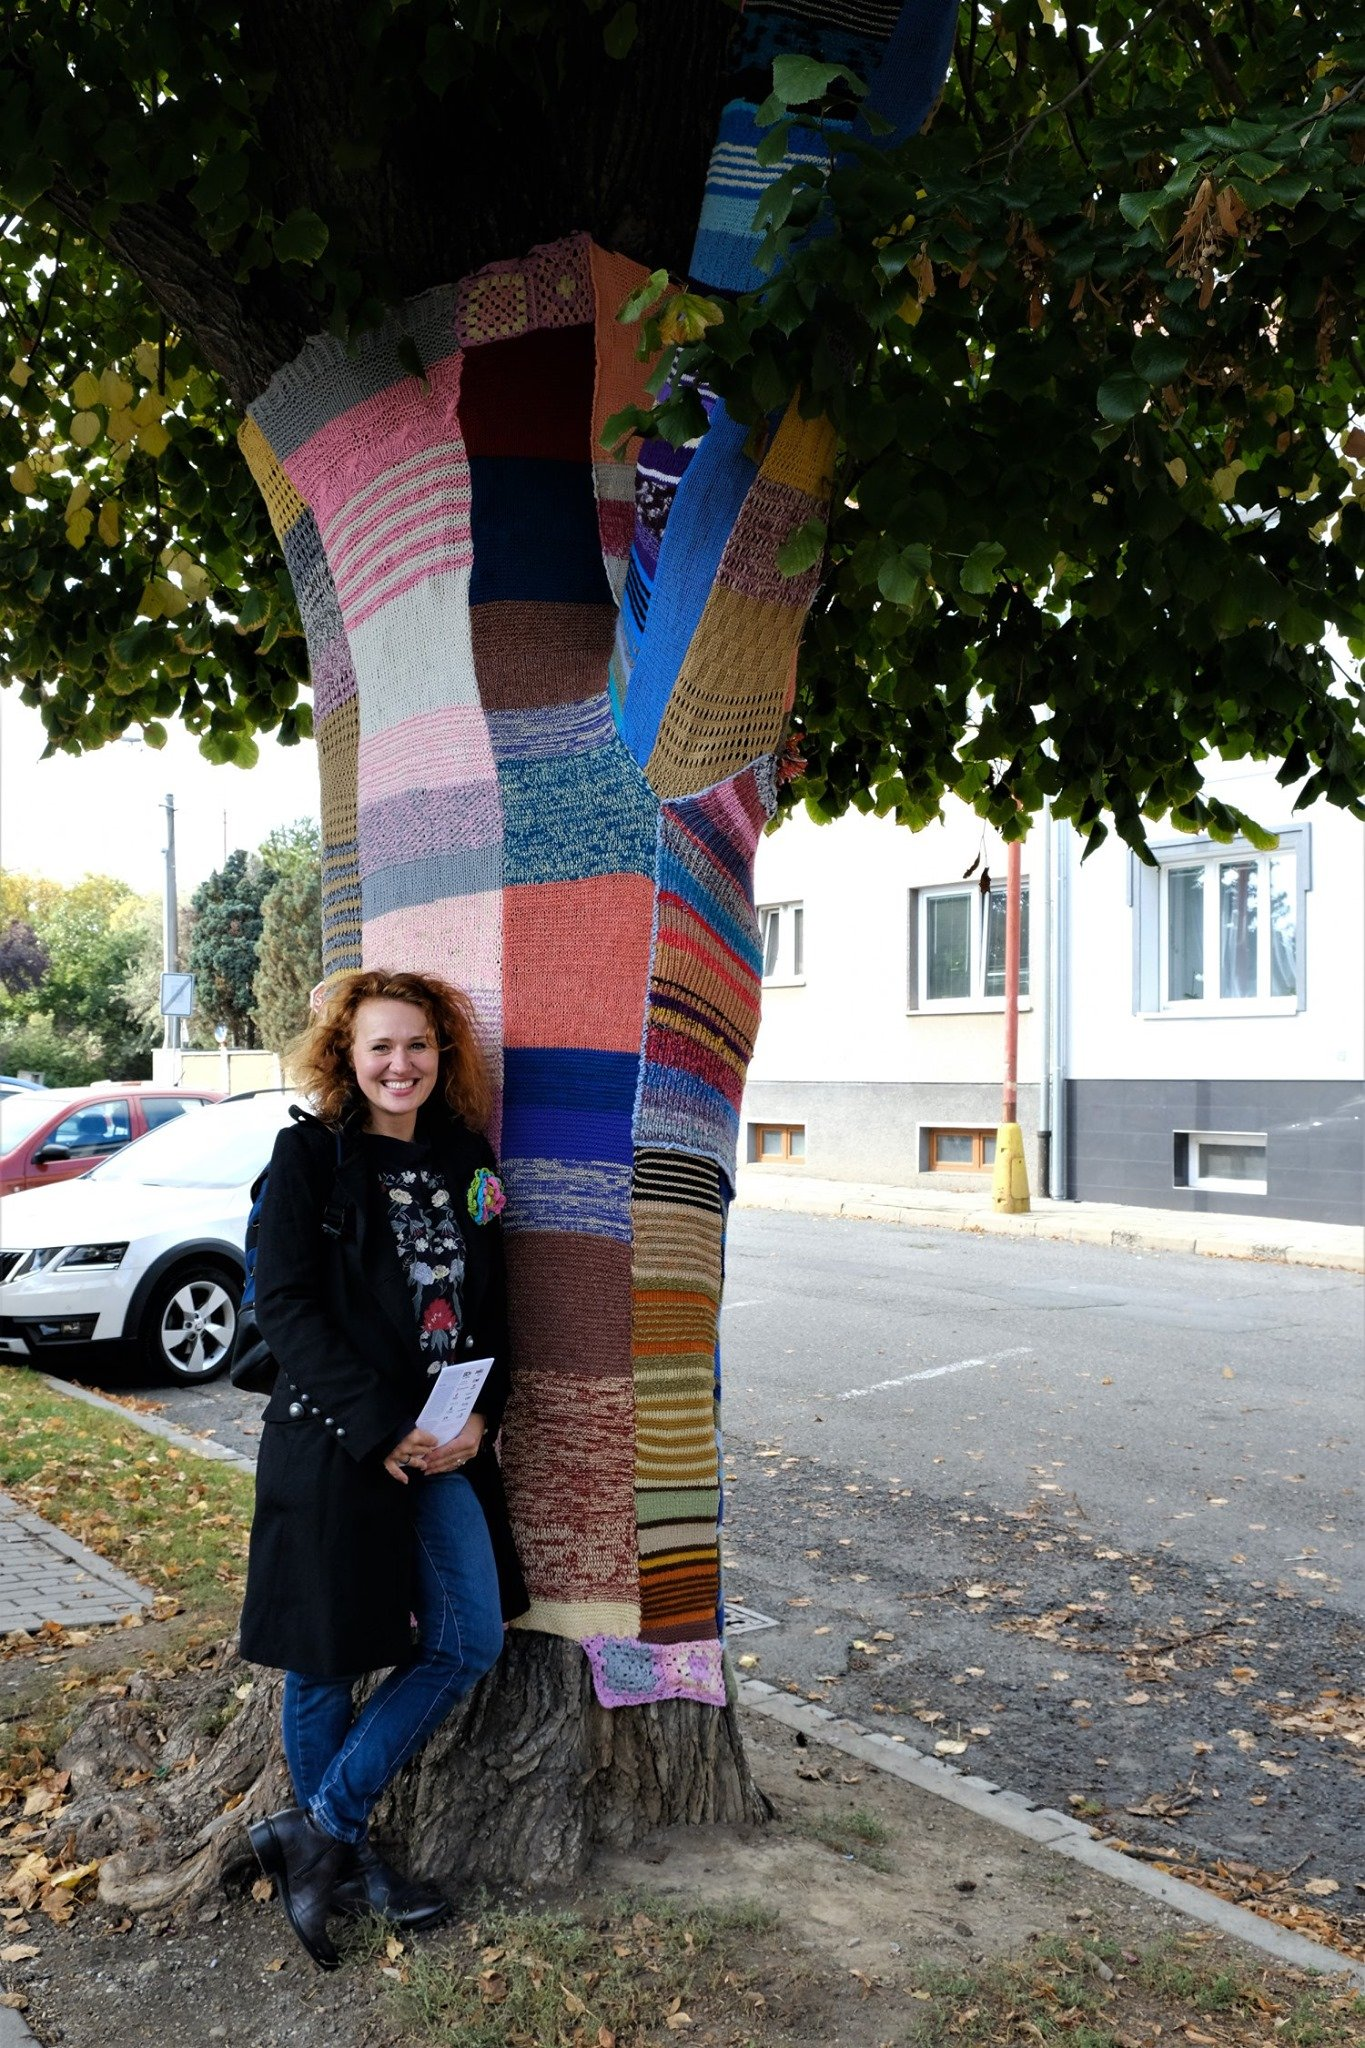 Tree dressed in a knit scarfs which were knitted in a local cafes in Uherské Hradiště.